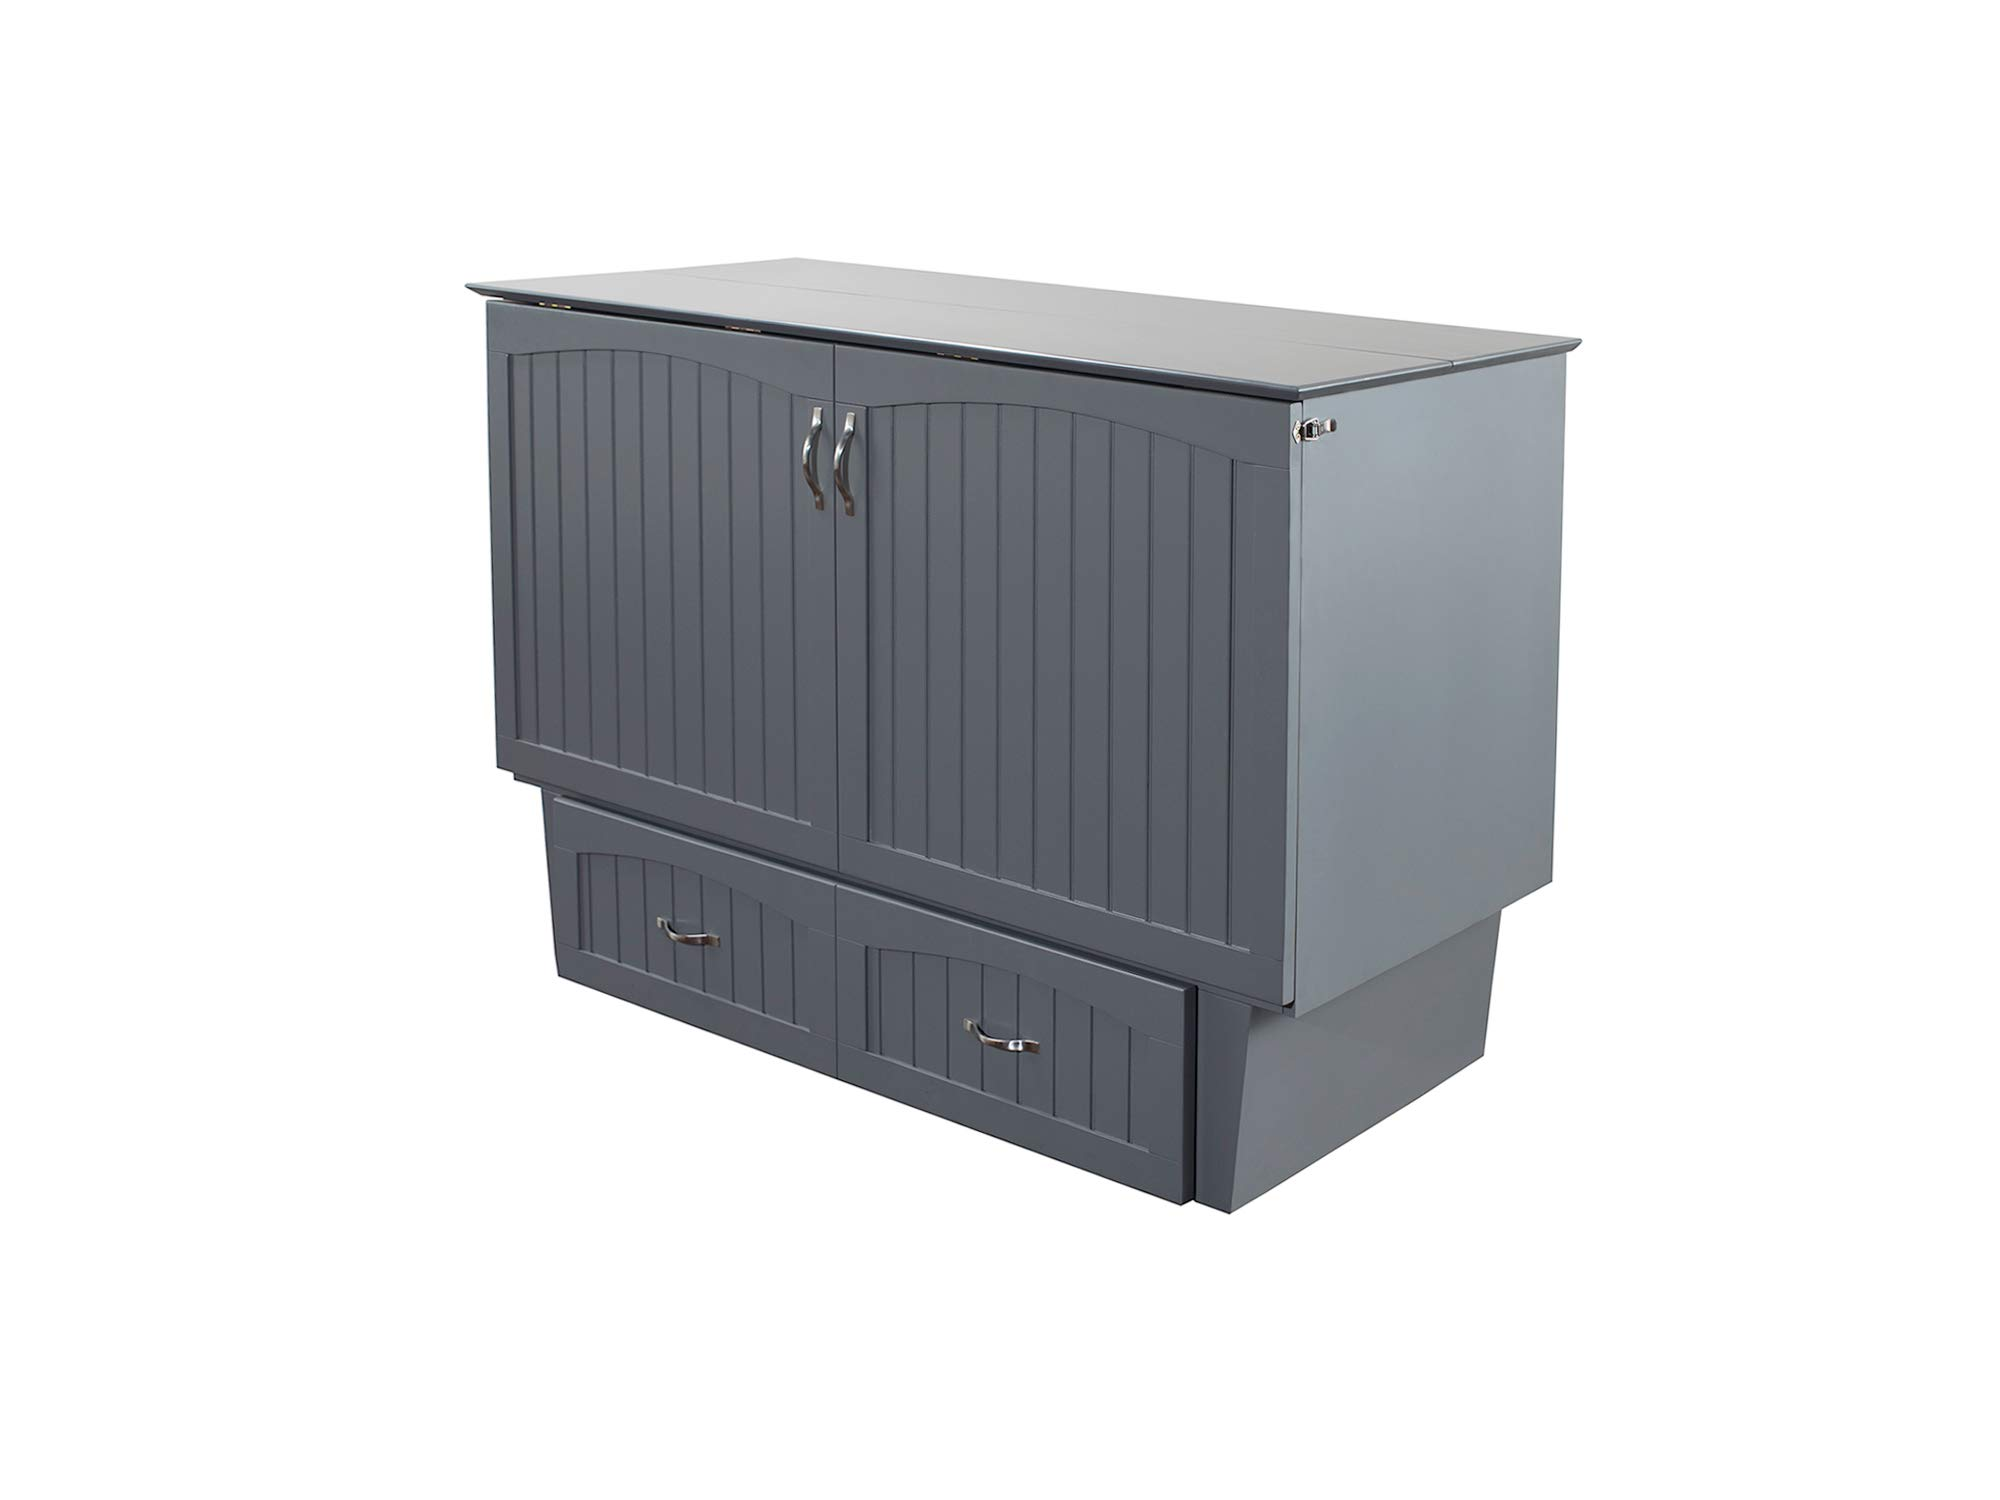 Atlantic Furniture Nantucket Murphy Bed Chest with Charging Station & Mattress, Queen, Grey by Atlantic Furniture